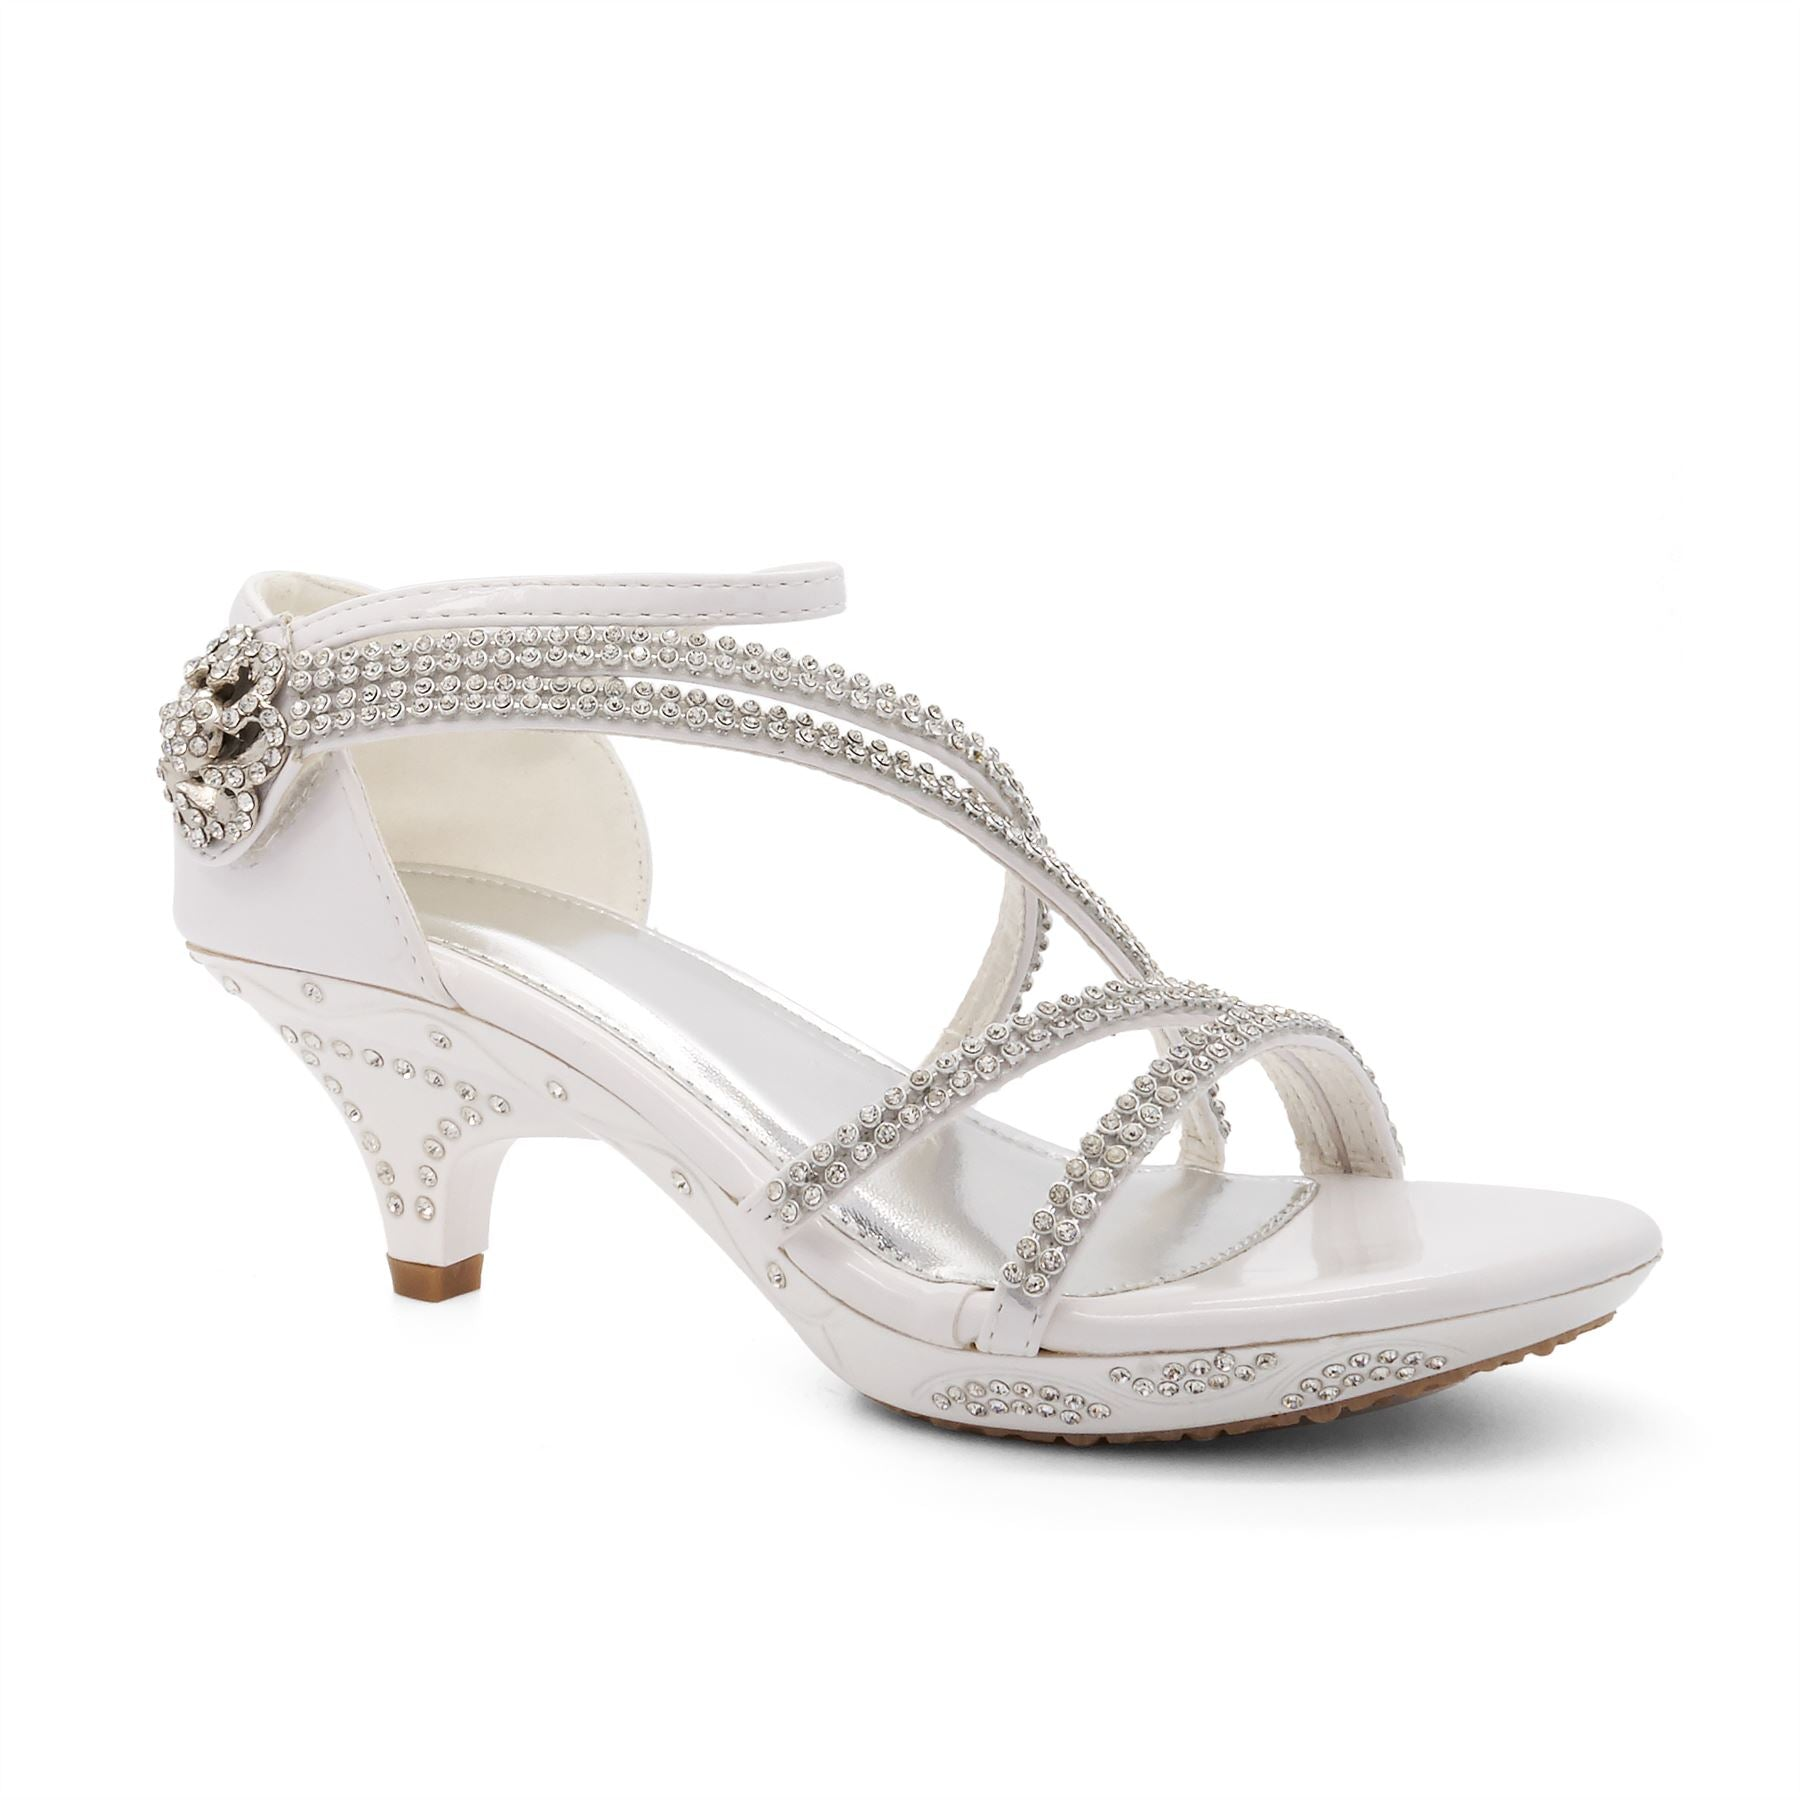 White Strappy Embellished Heeled Sandals